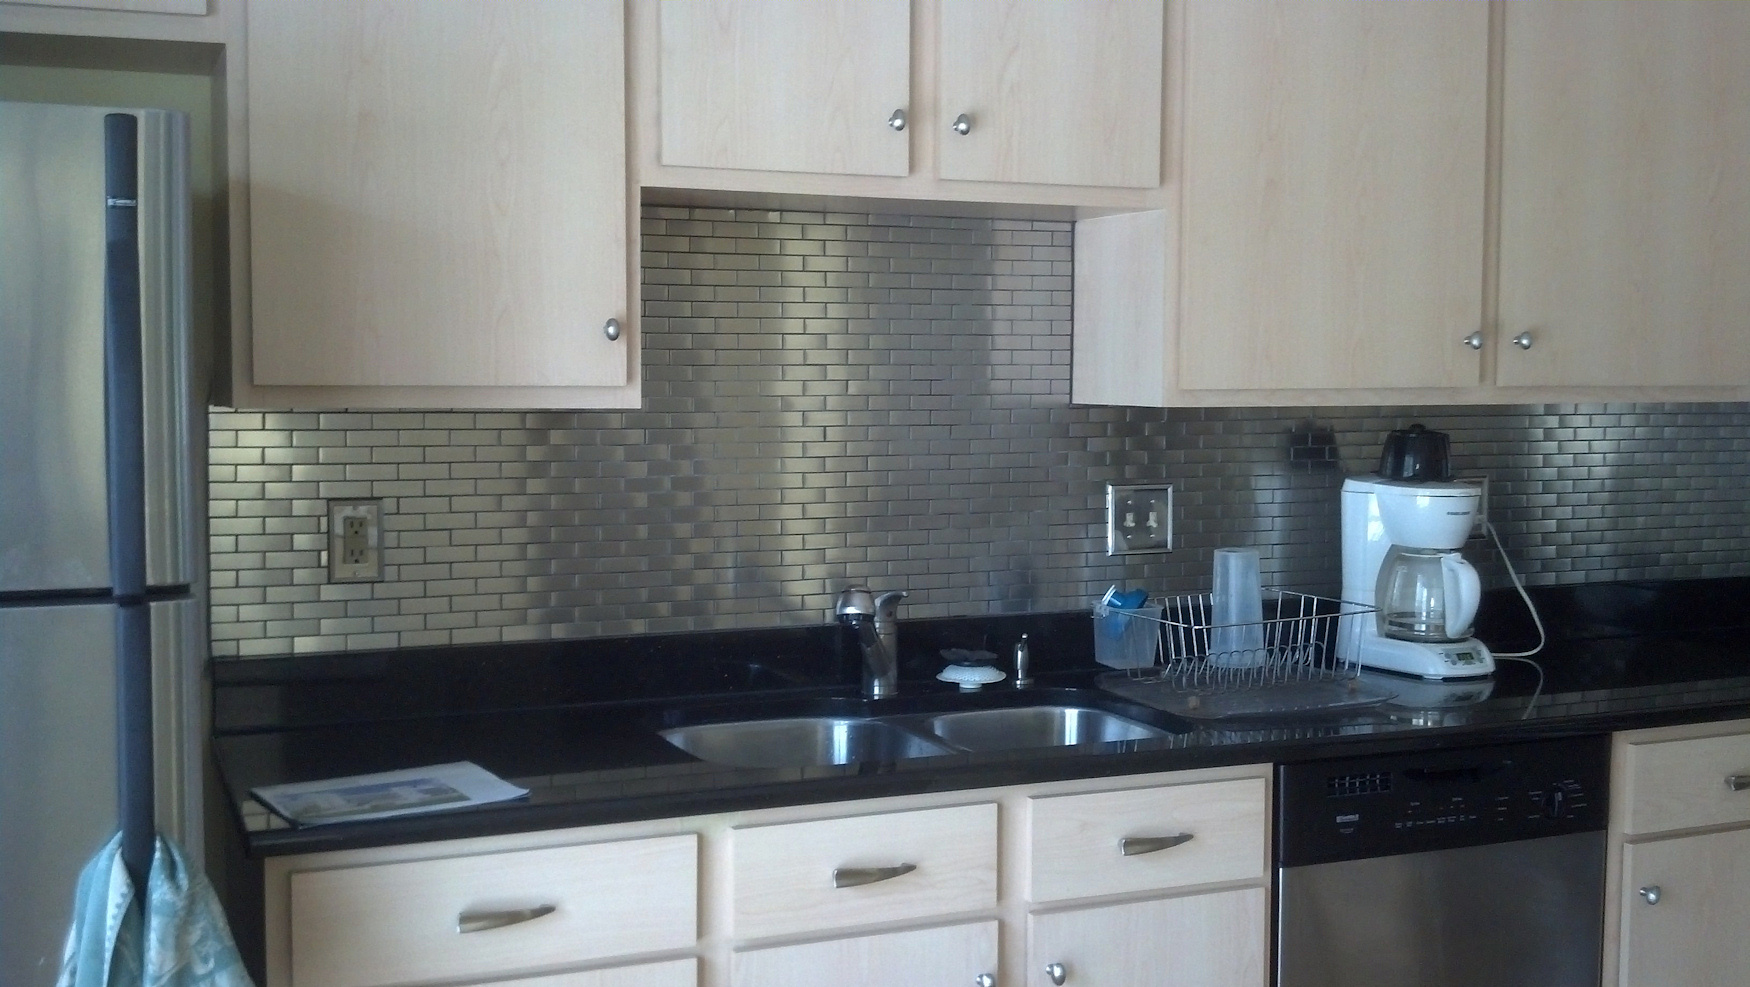 stainless steel subway tile kitchen backsplash - Kitchen Metal Backsplash